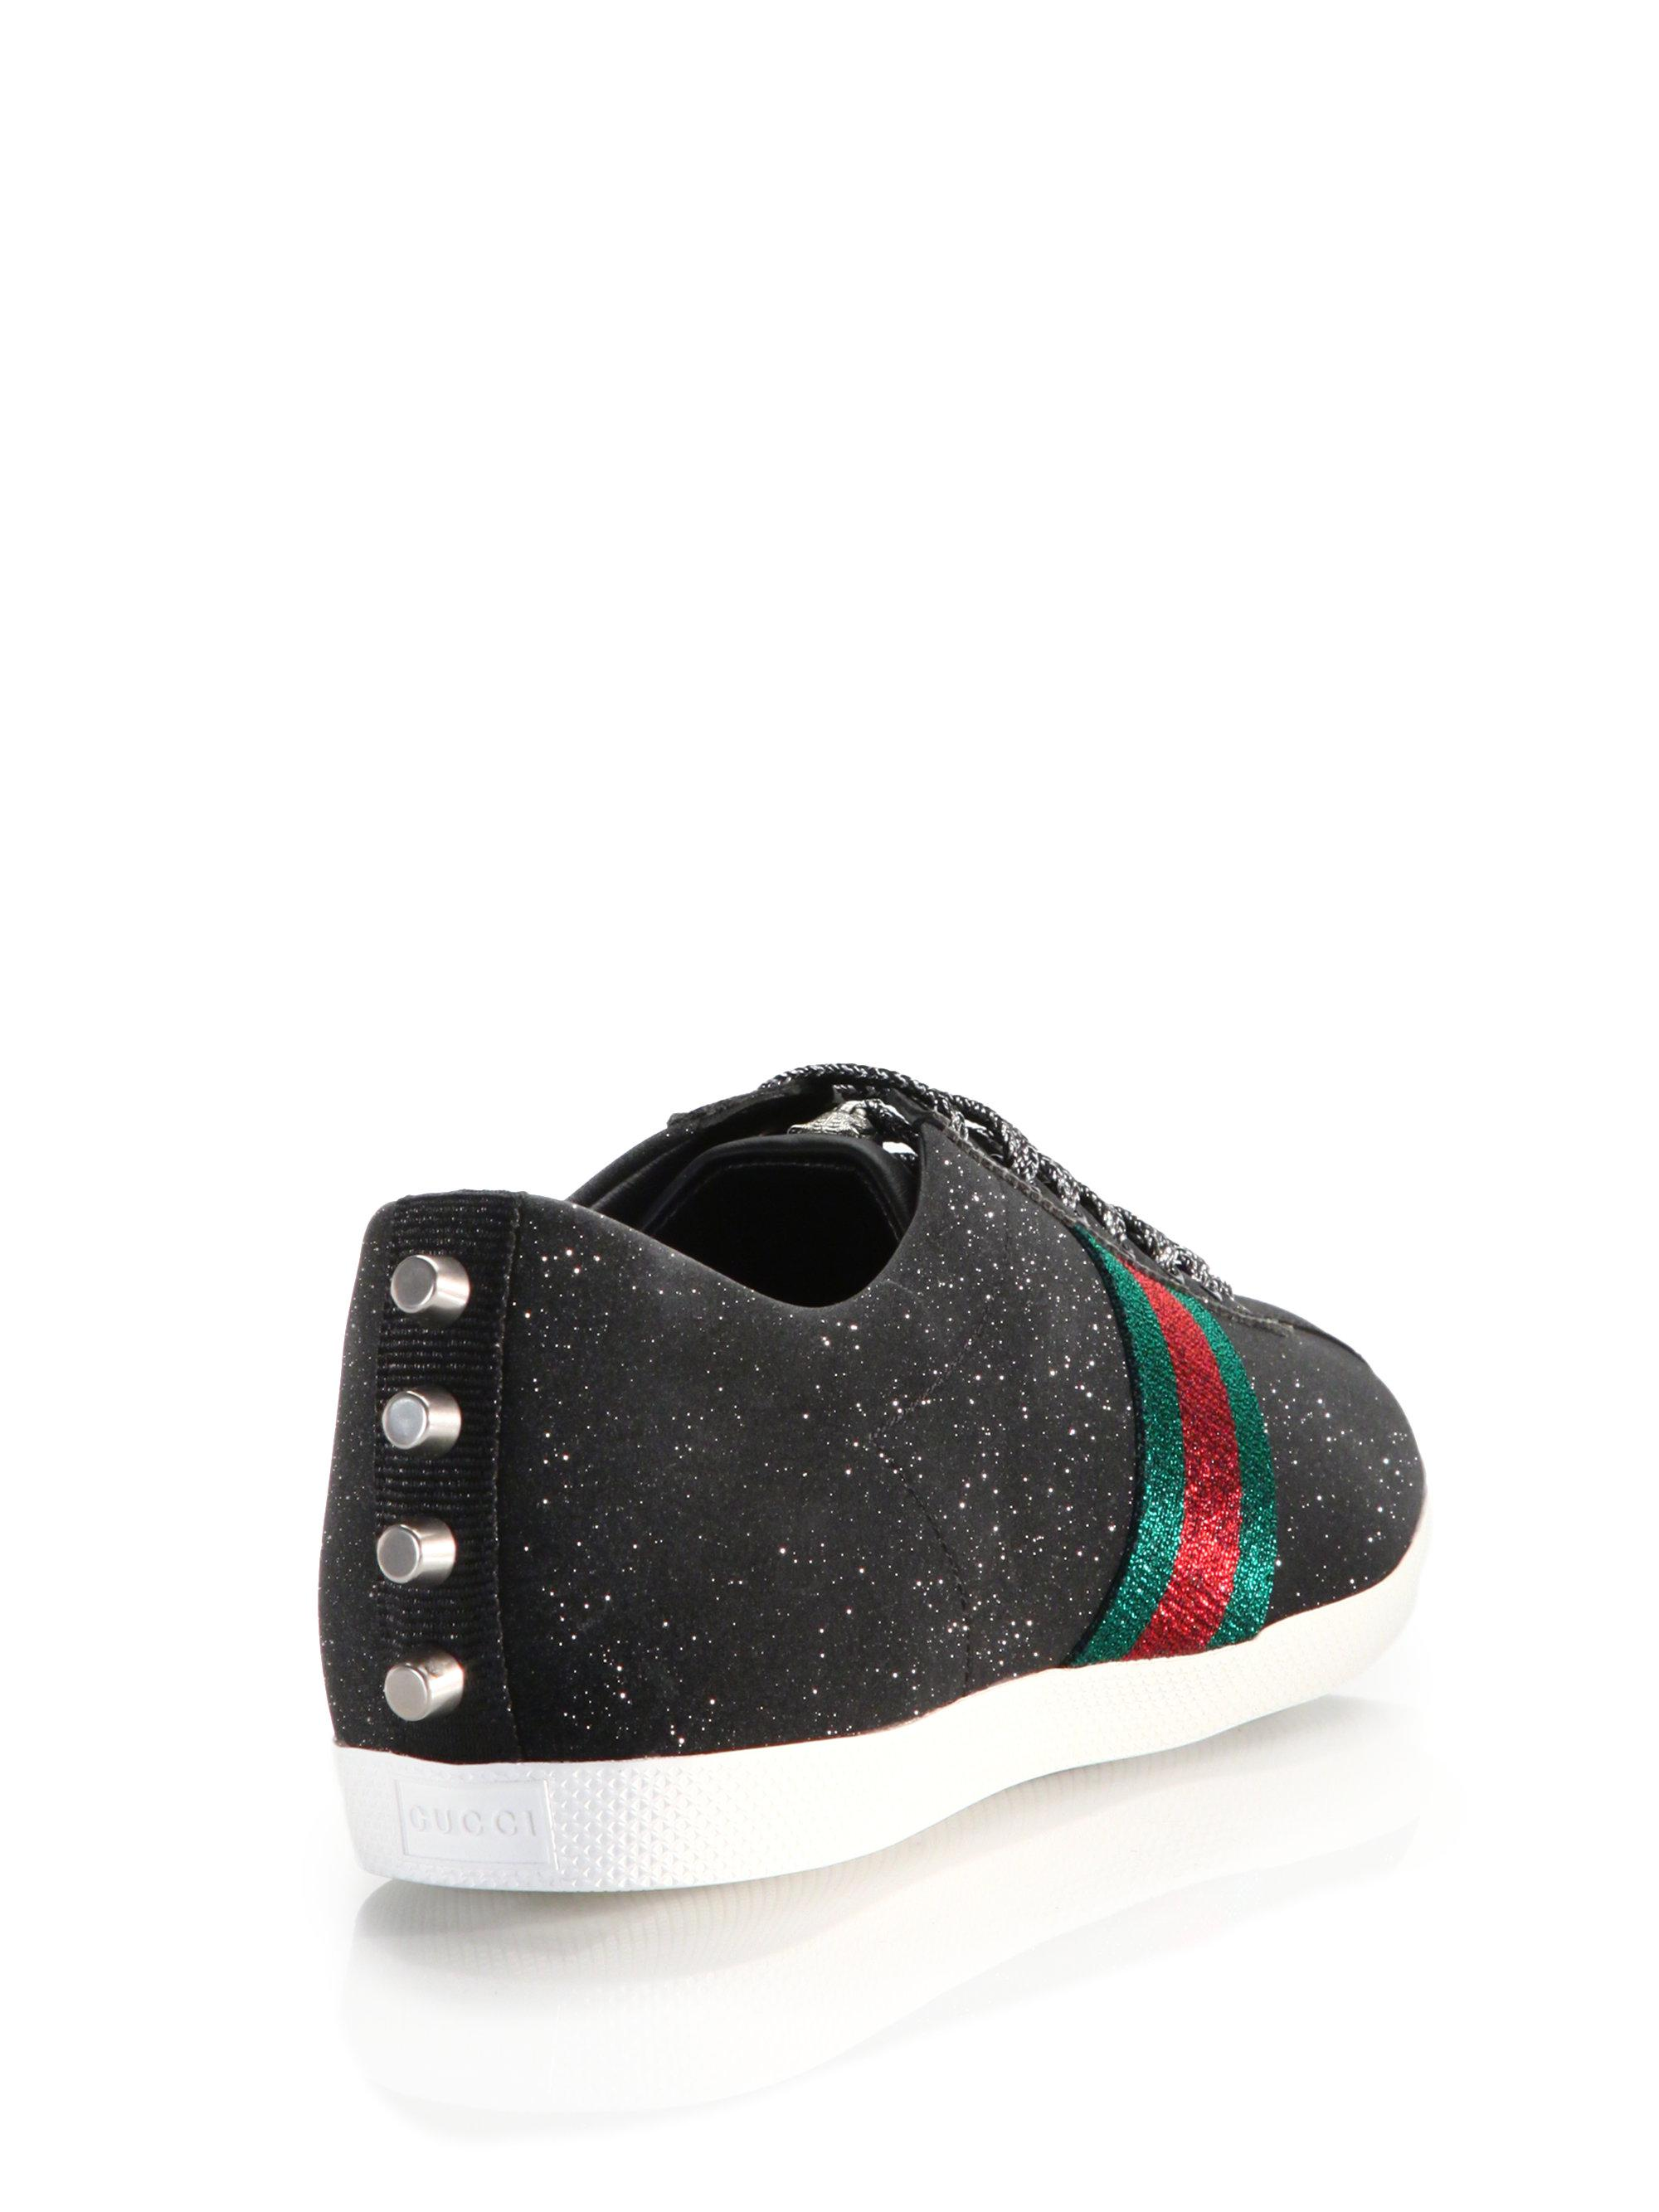 gucci sparkle sneakers,Free Shipping